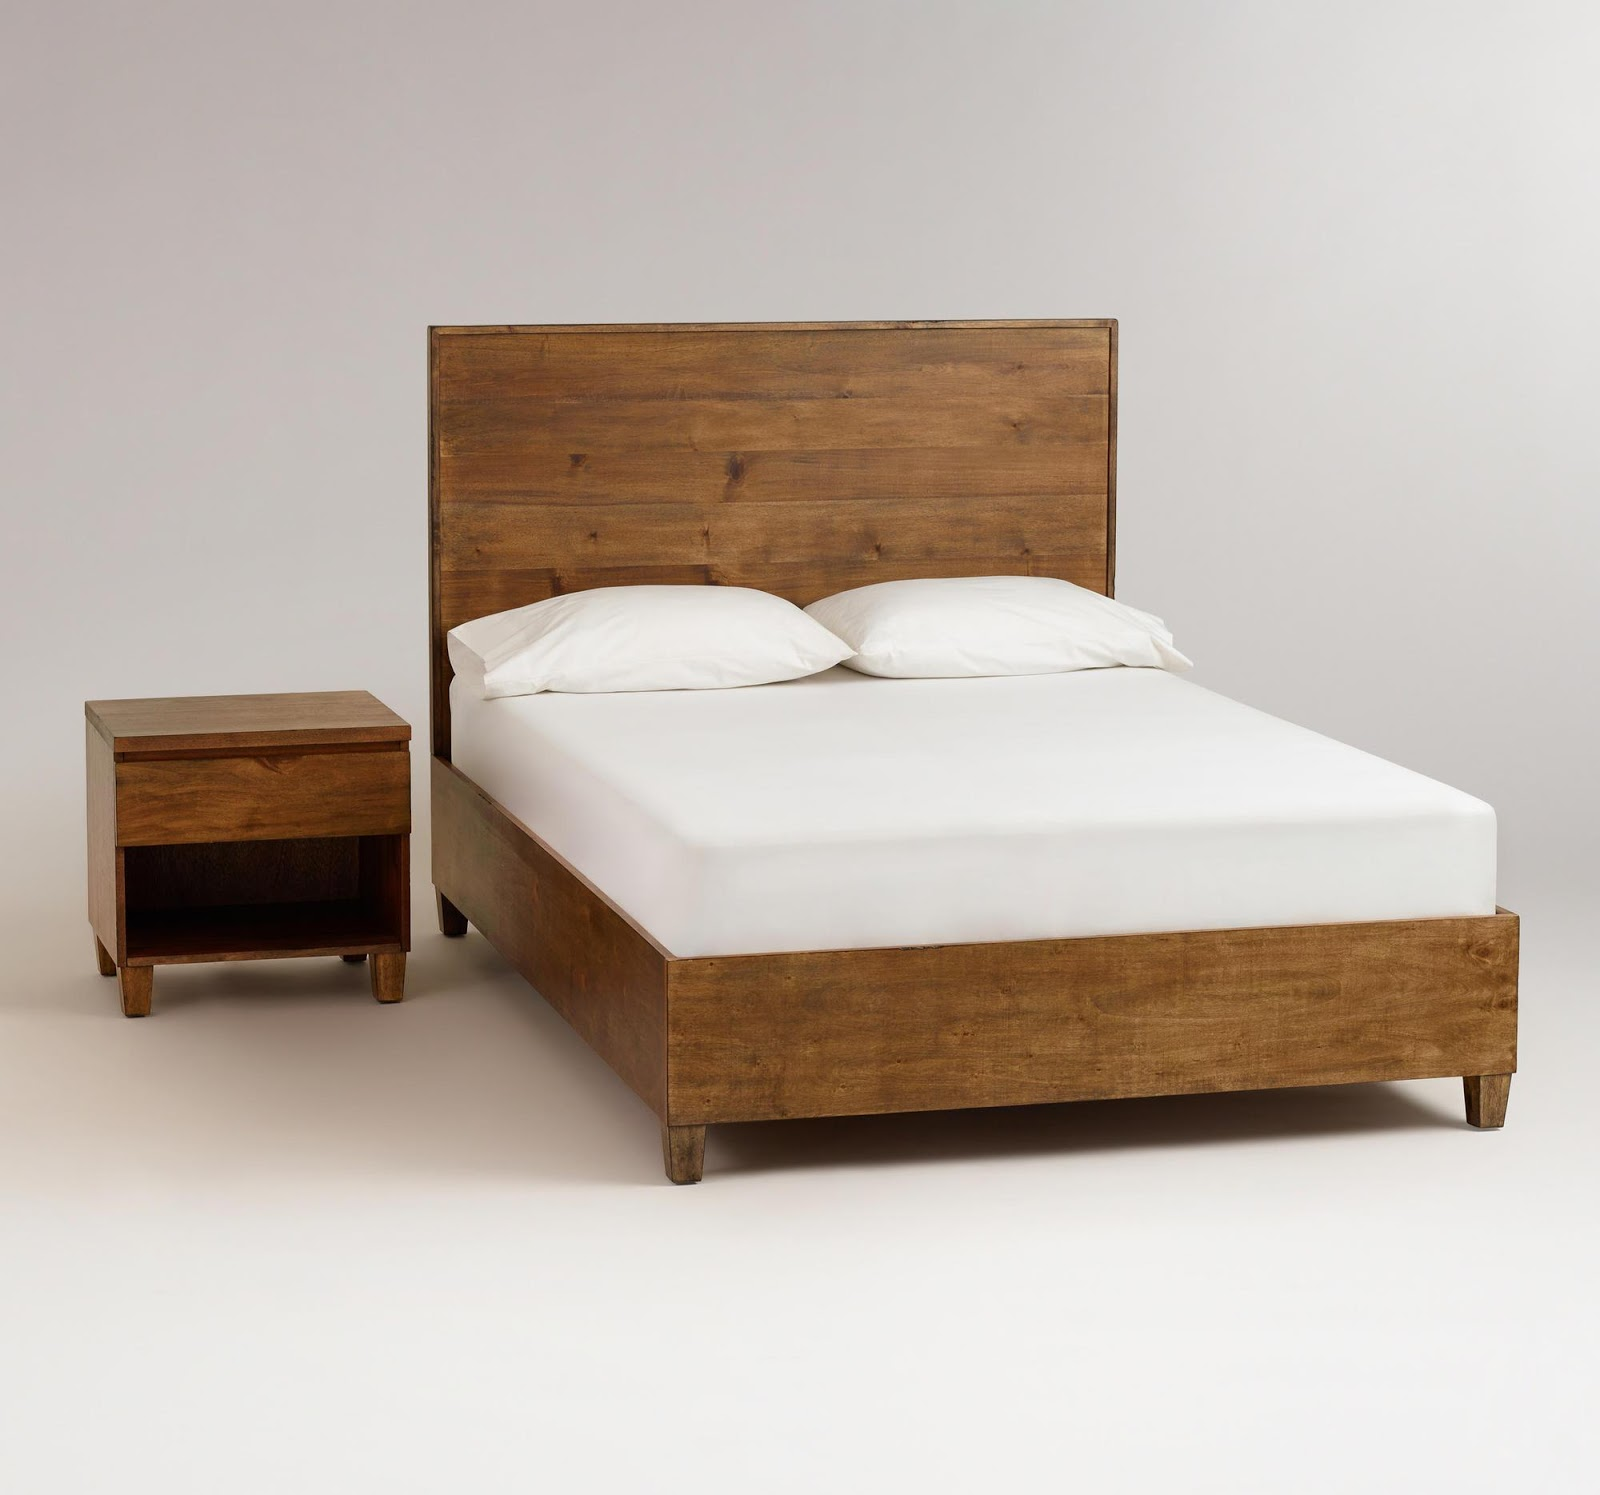 Home priority homey feeling of rustic bed frames ideas Simple wood bed frame designs